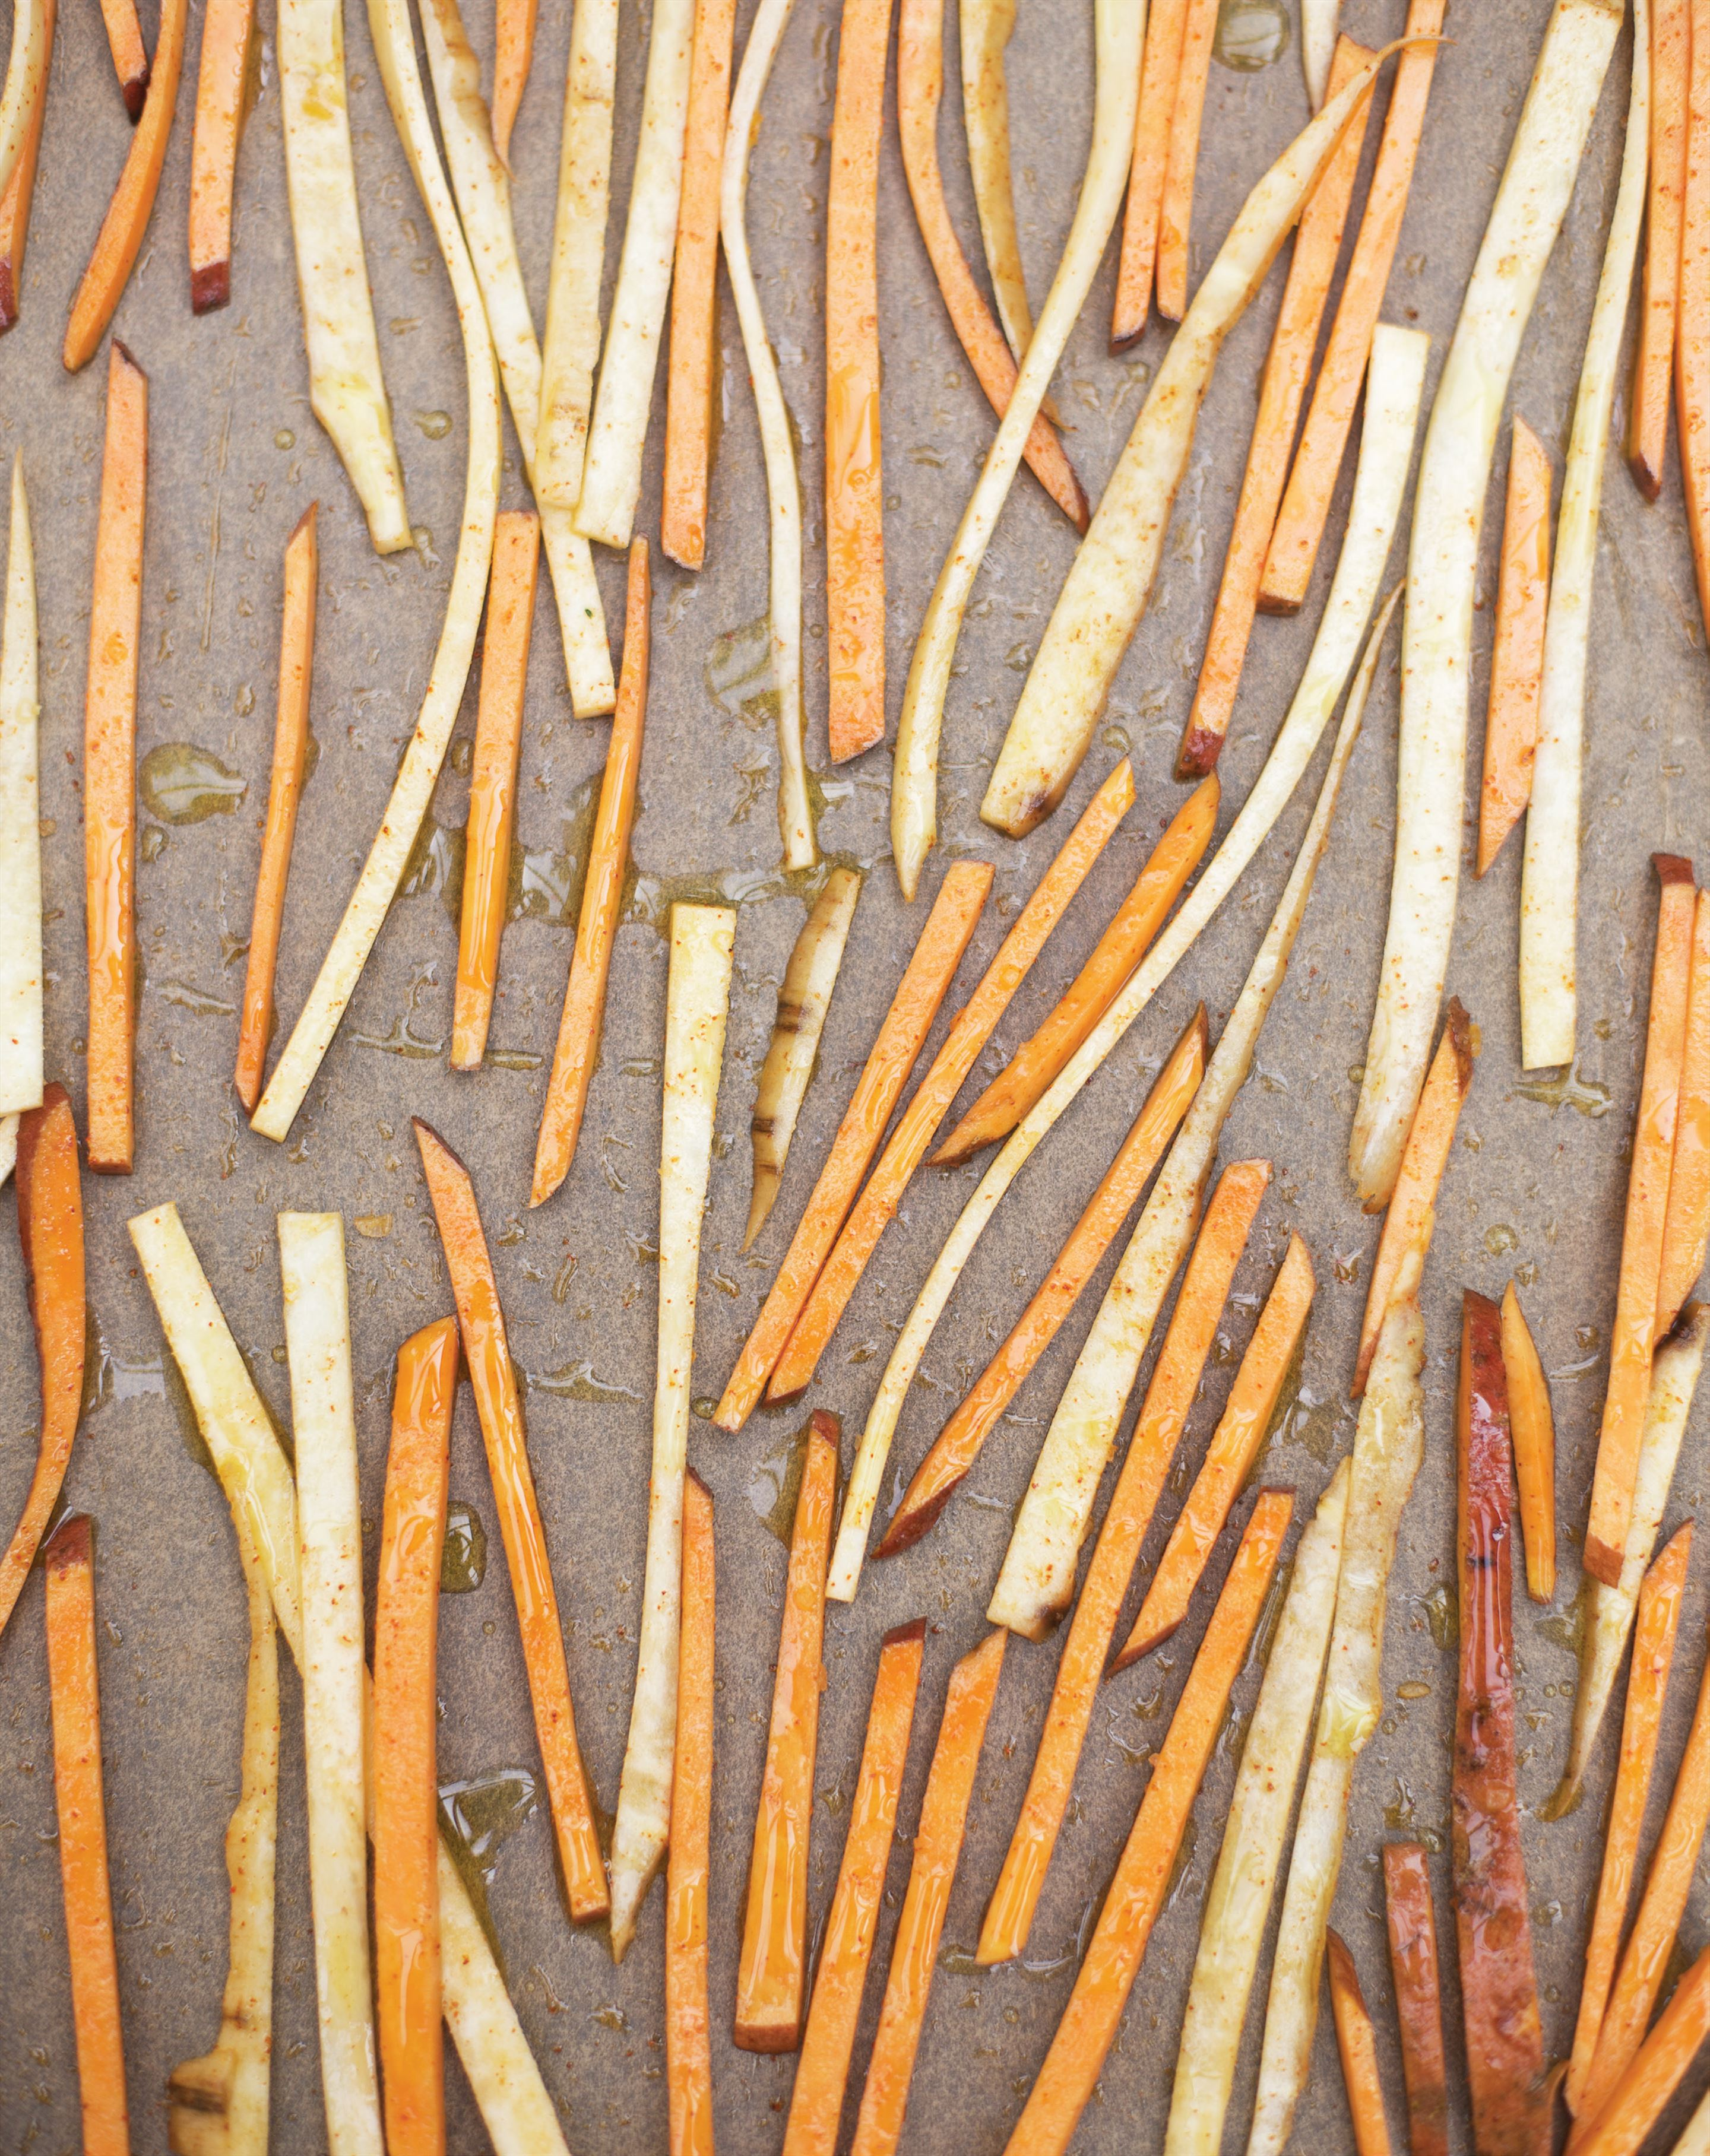 Spicy skinny root sticks